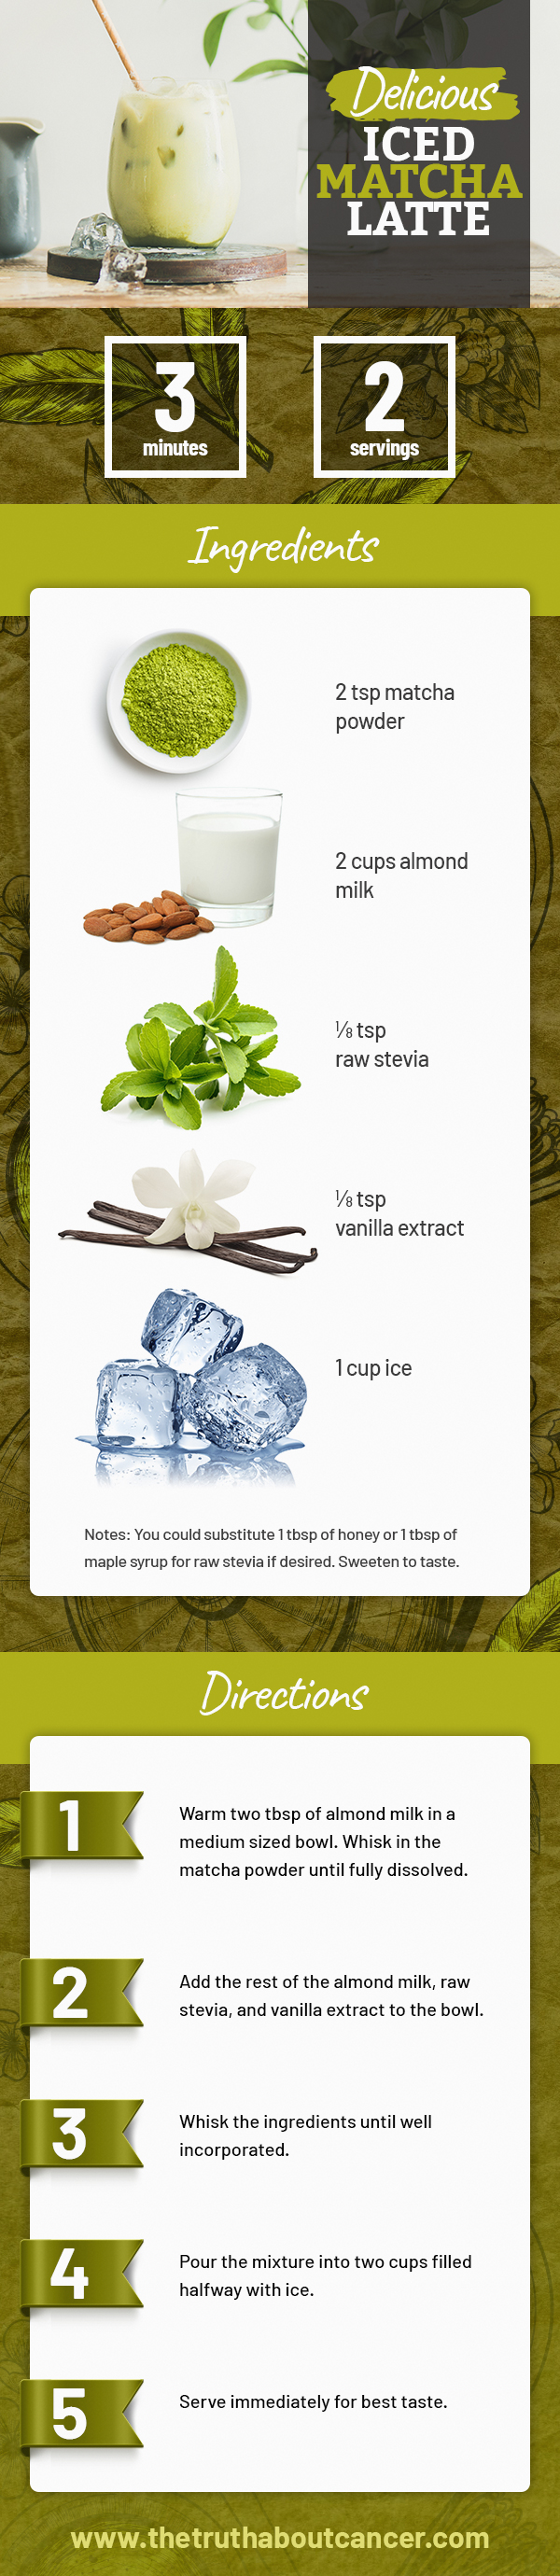 iced matcha green tea recipe